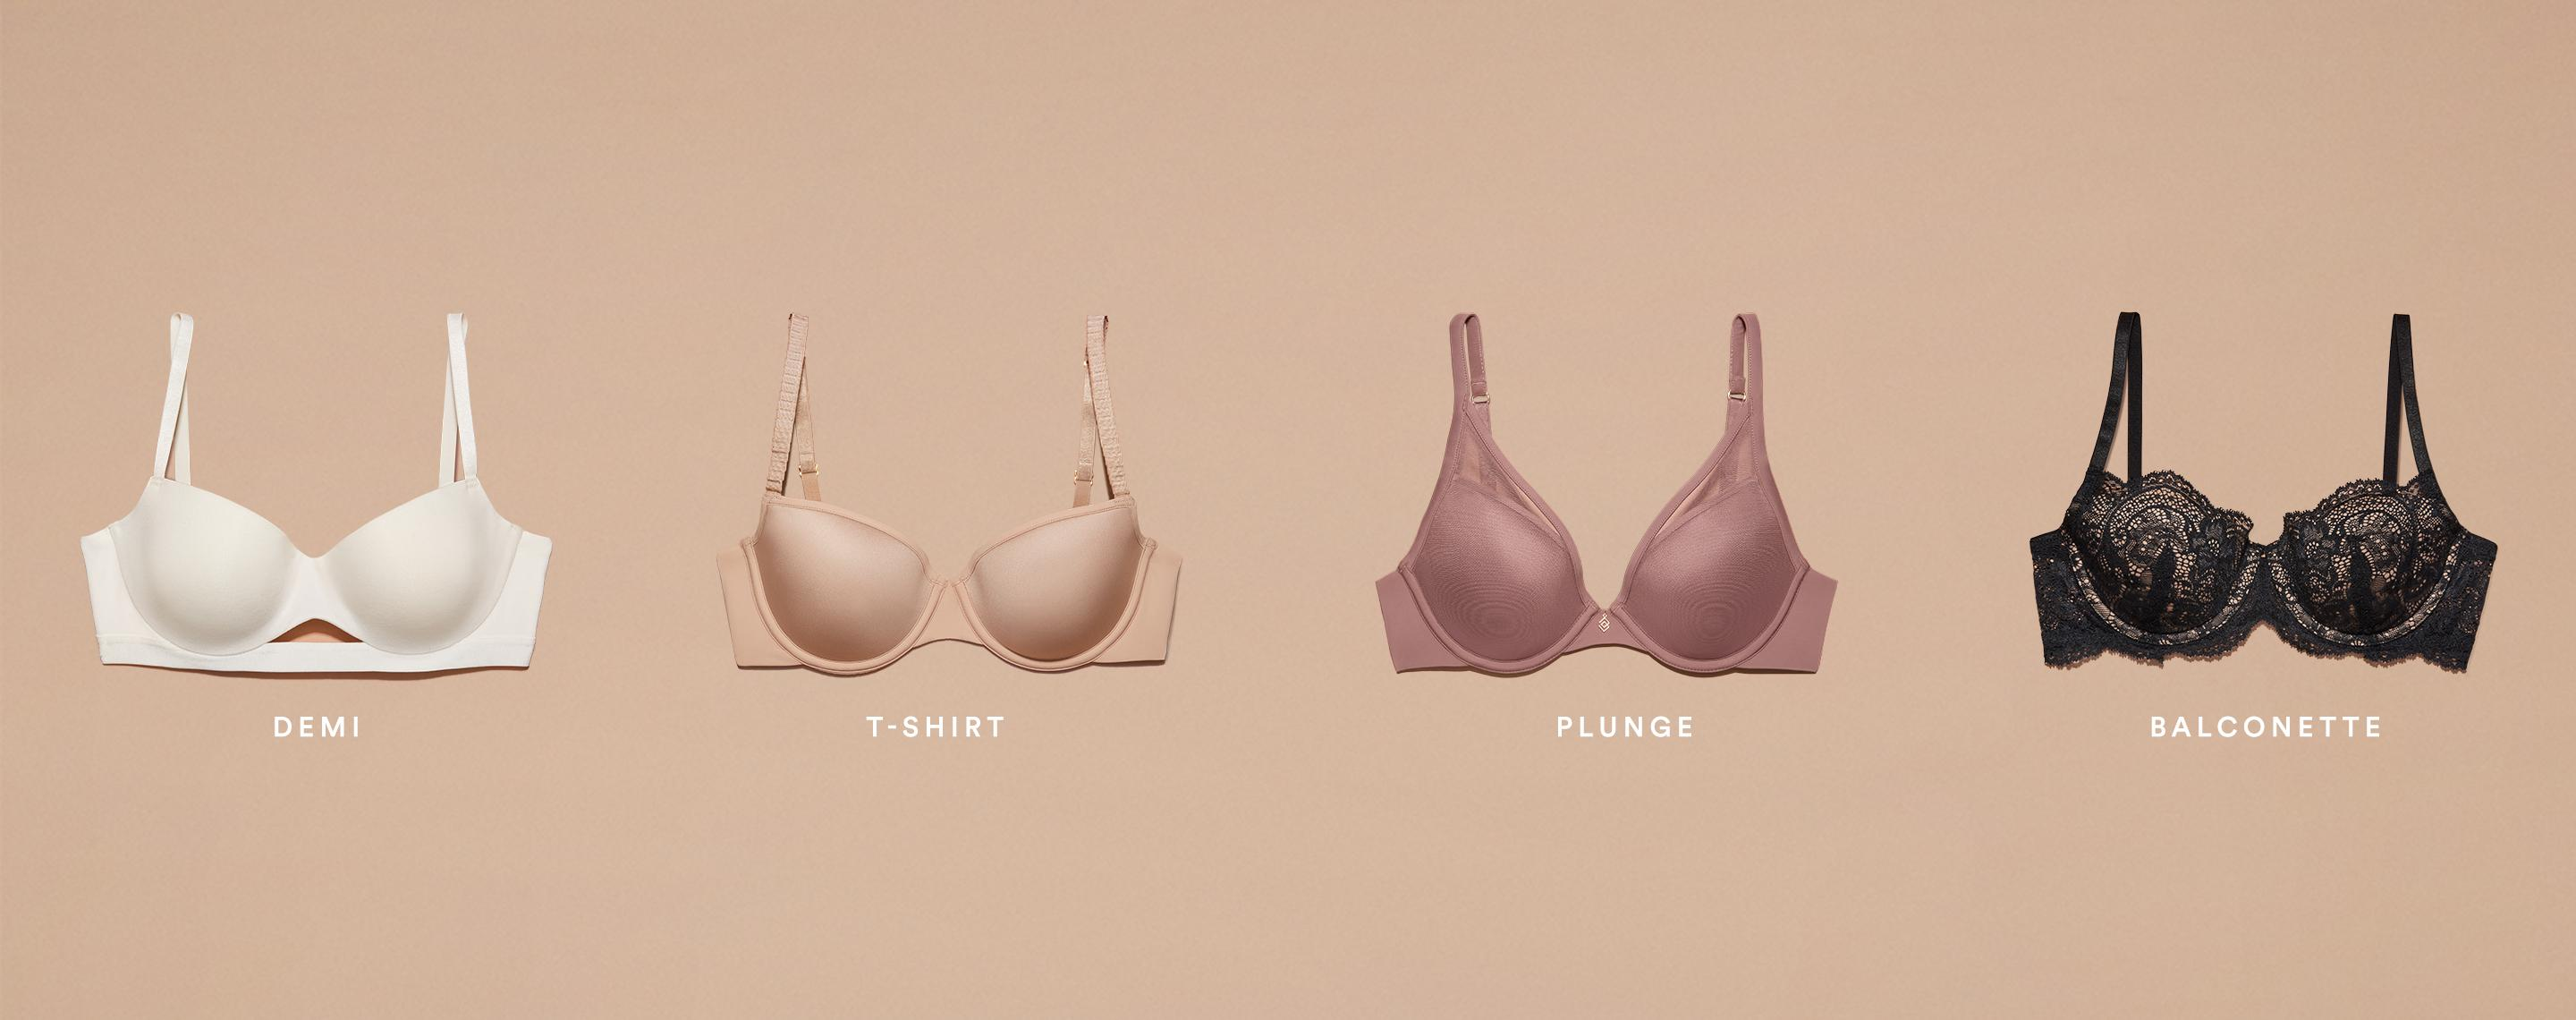 How to tell the difference between different types of bras.